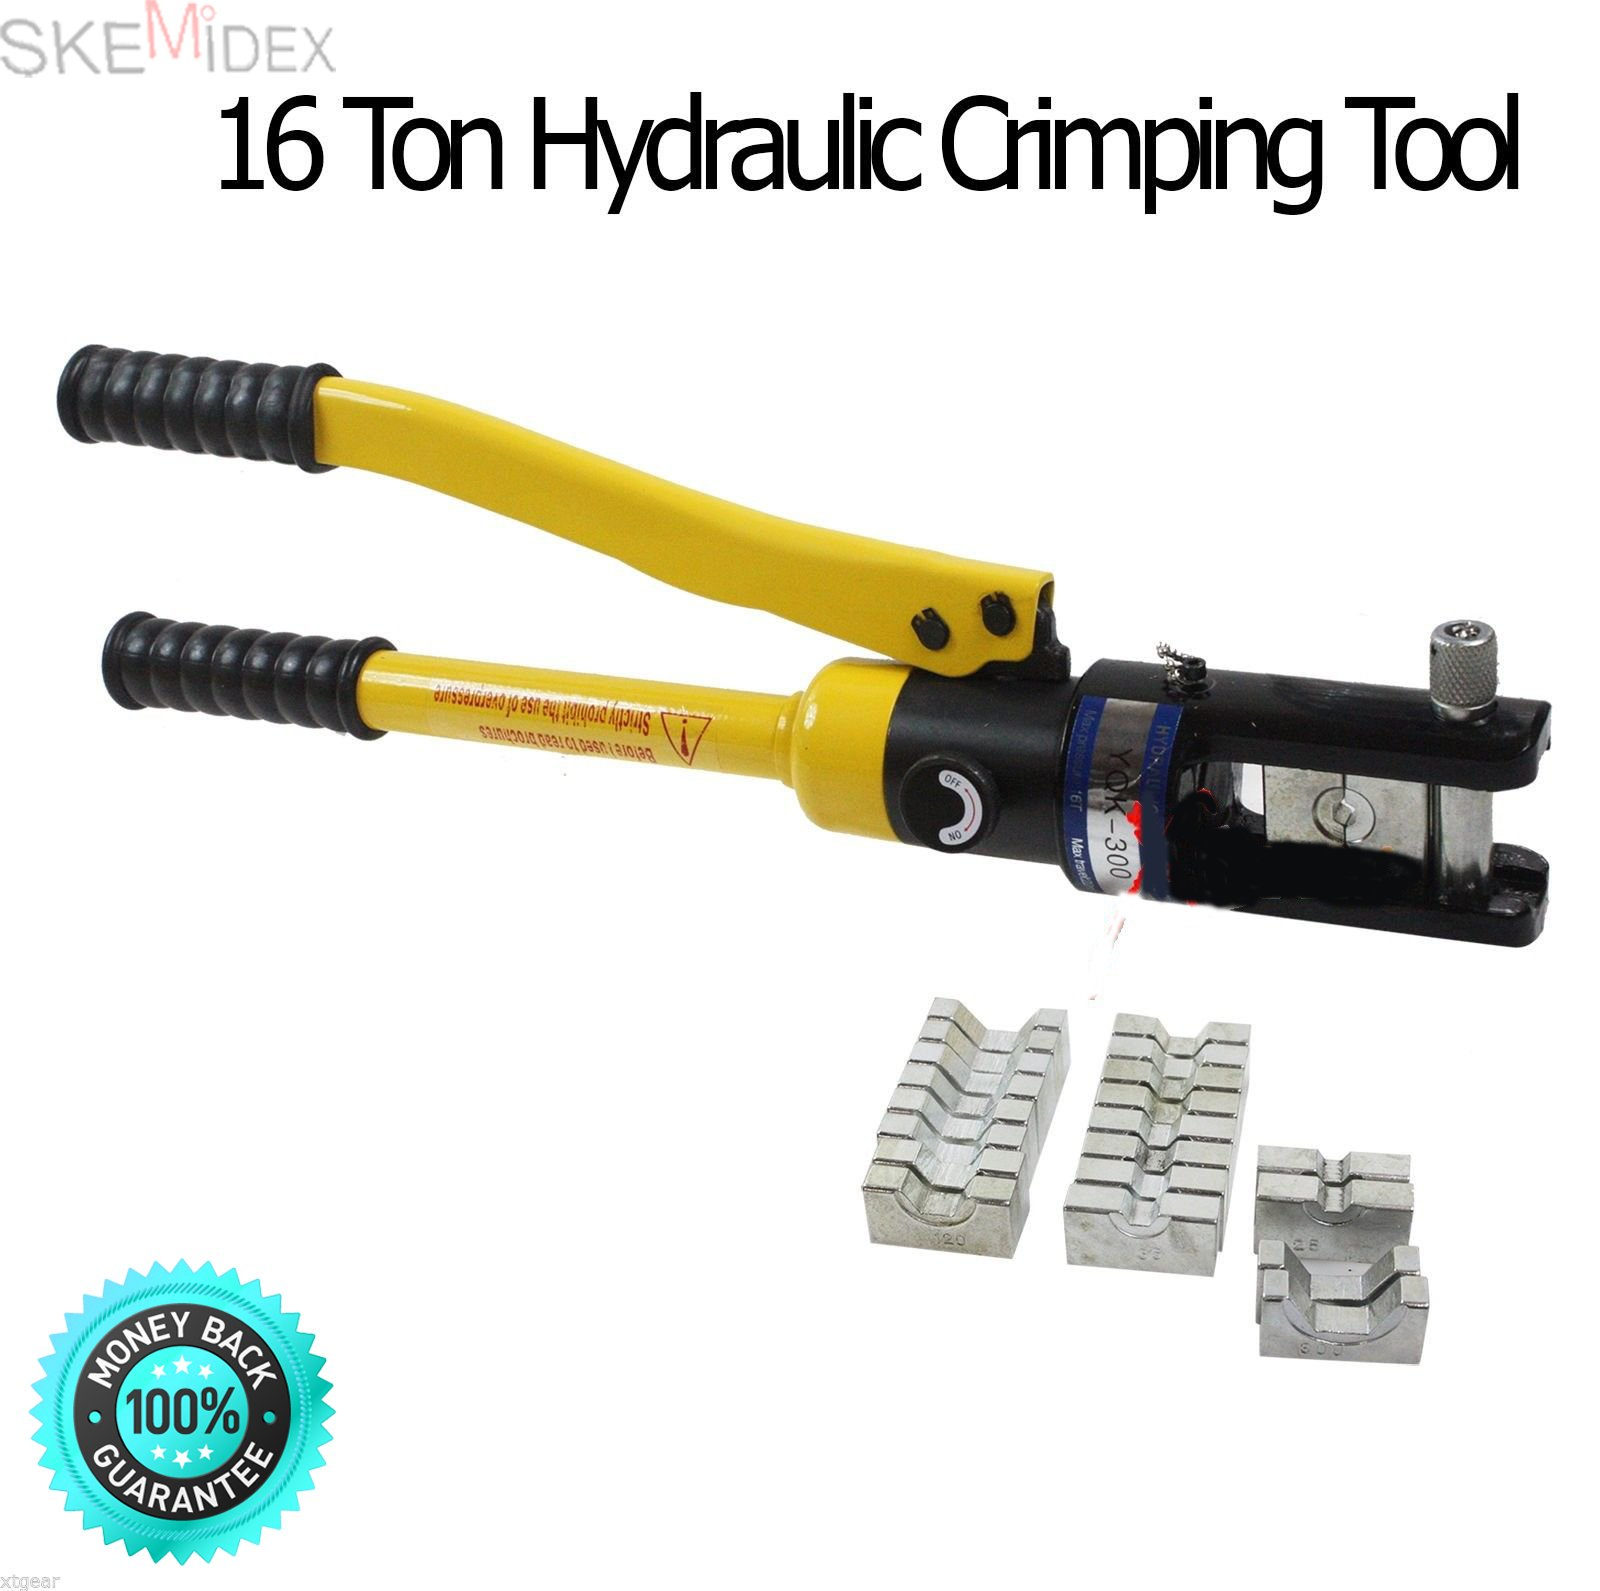 SKEMiDEX---New 16 Ton Hydraulic Wire Terminal Crimper Battery Cable Lug Crimping Tool. C shape crimping tool head, with safety equipment, manual hand operated